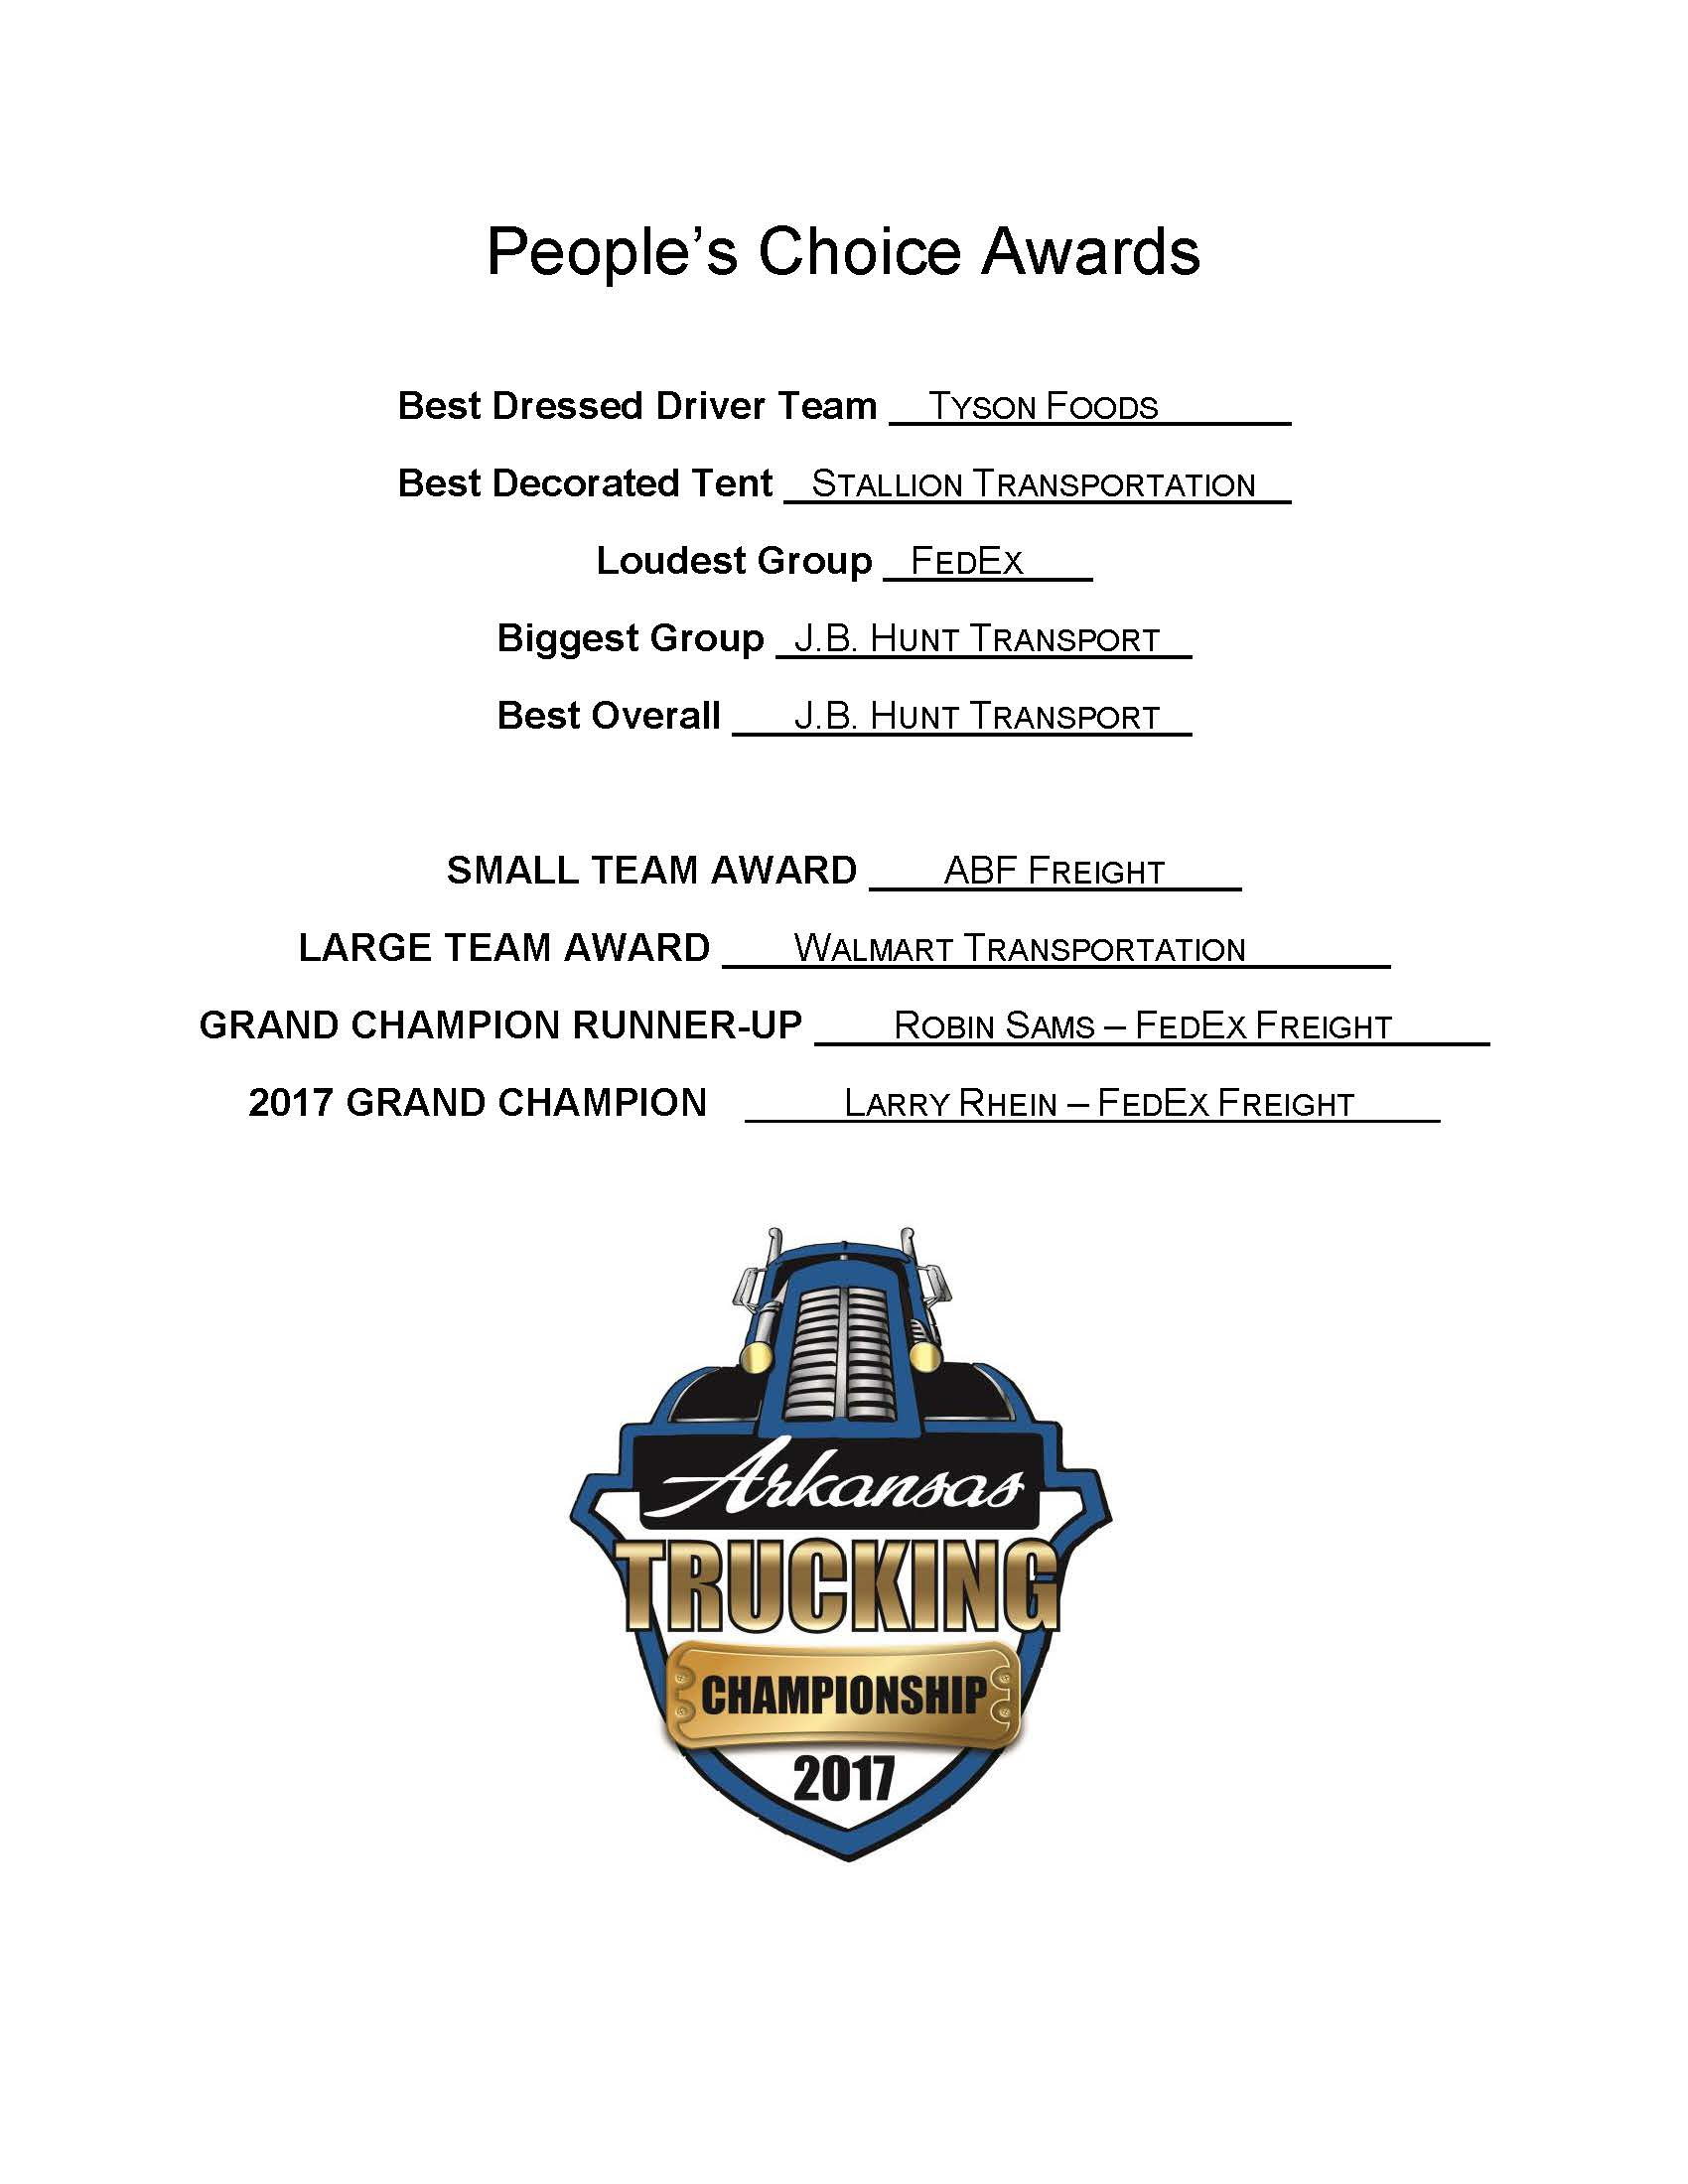 2017 Truck Driving Championship Winners Page 3